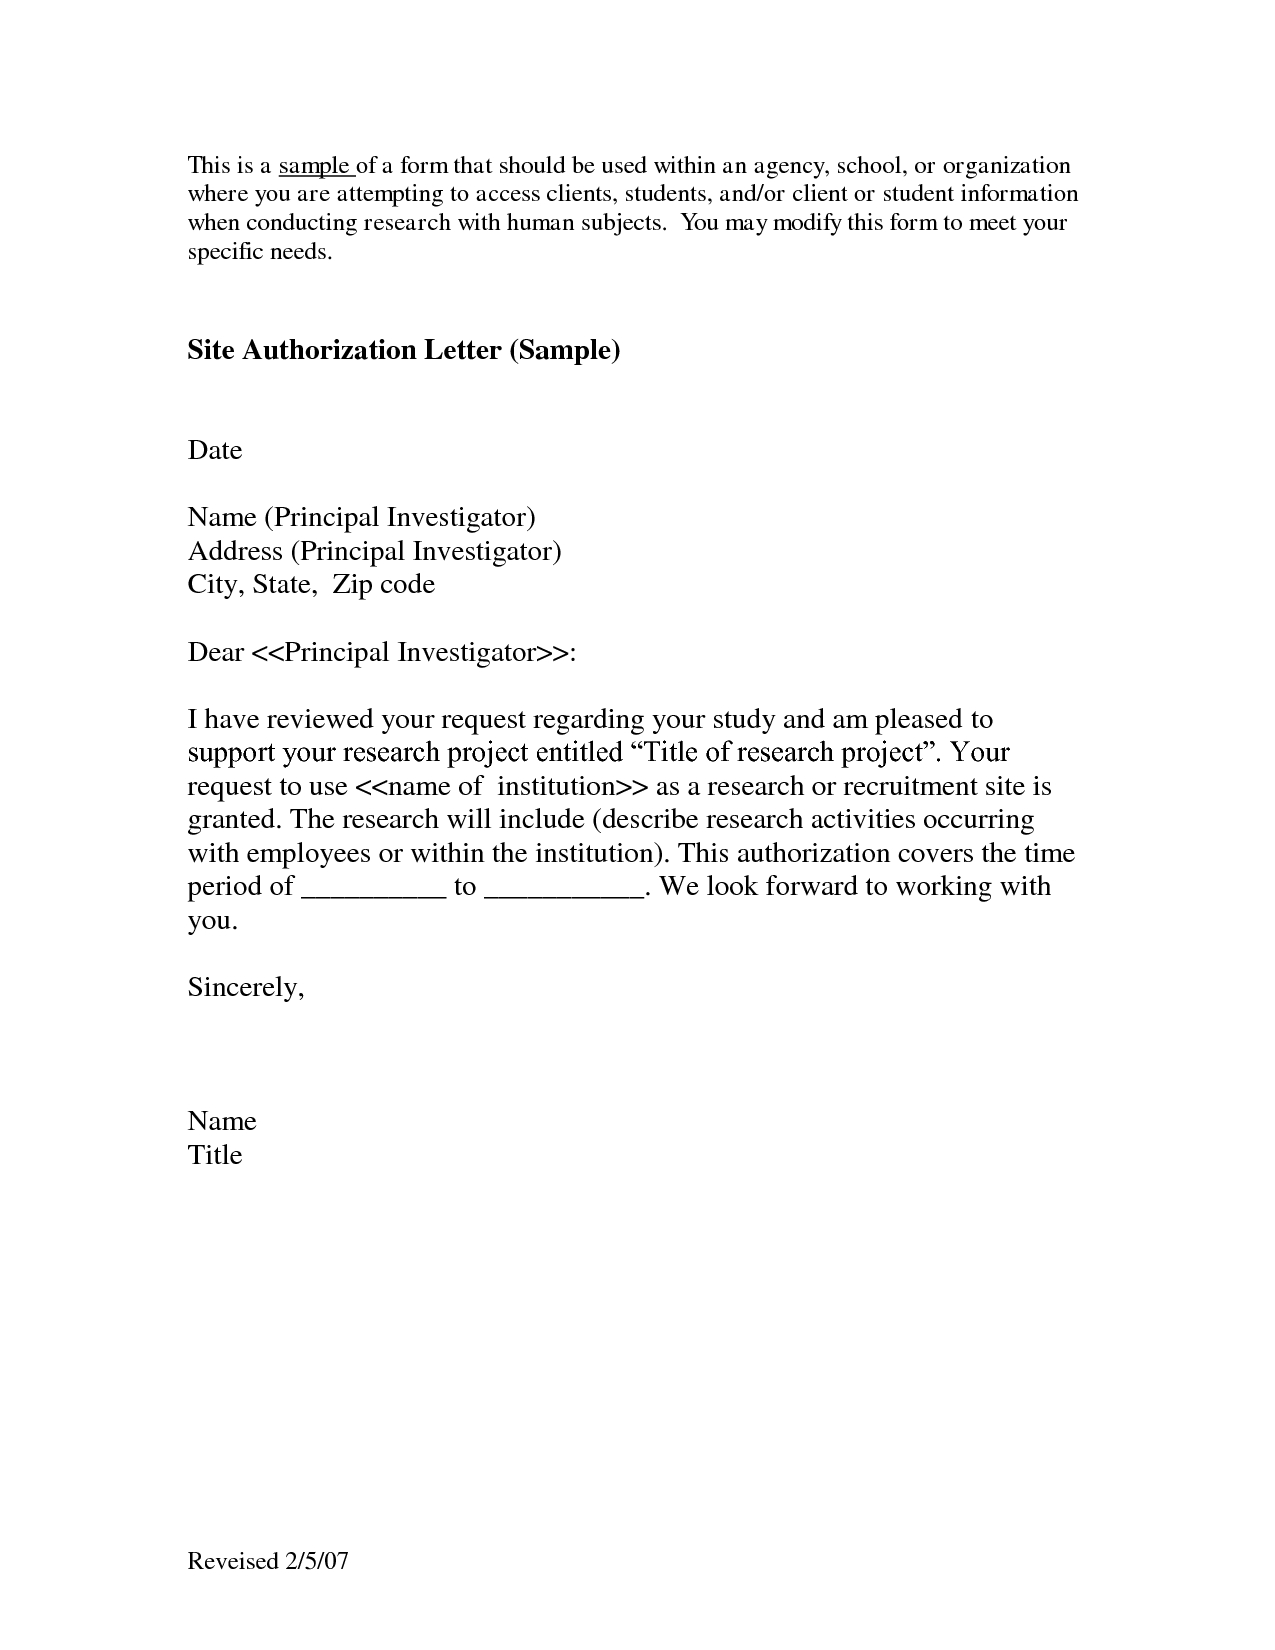 Proxy Letter Template - Tender Authorization Letter Authorization Letter to Purchase